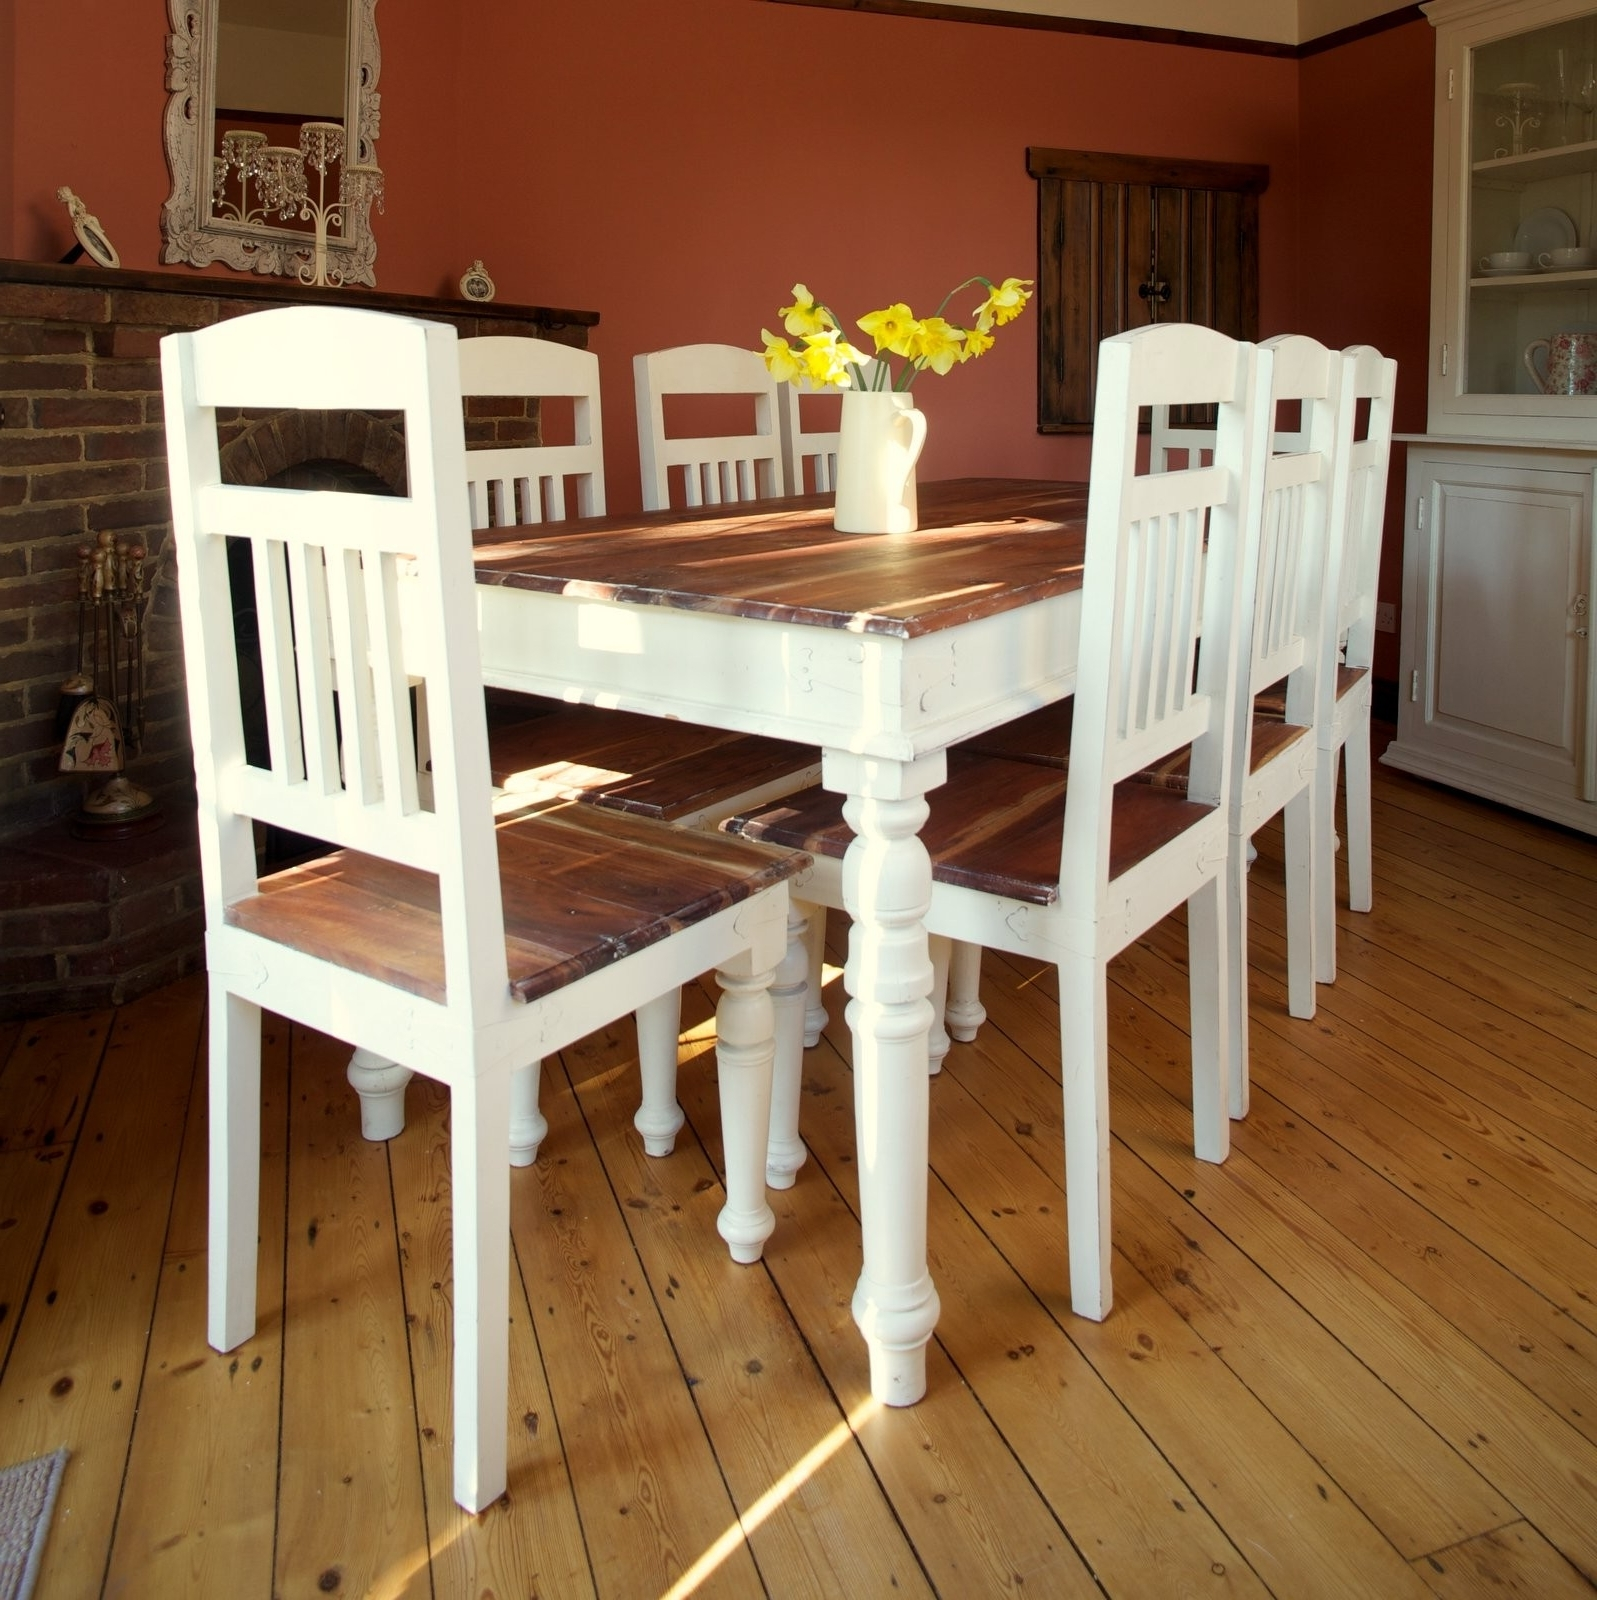 Most Recent Shabby Chic Cream Dining Tables And Chairs With Regard To Incredible Ideas Shabby Chic Cream Dining Table And Chairs  (View 14 of 25)